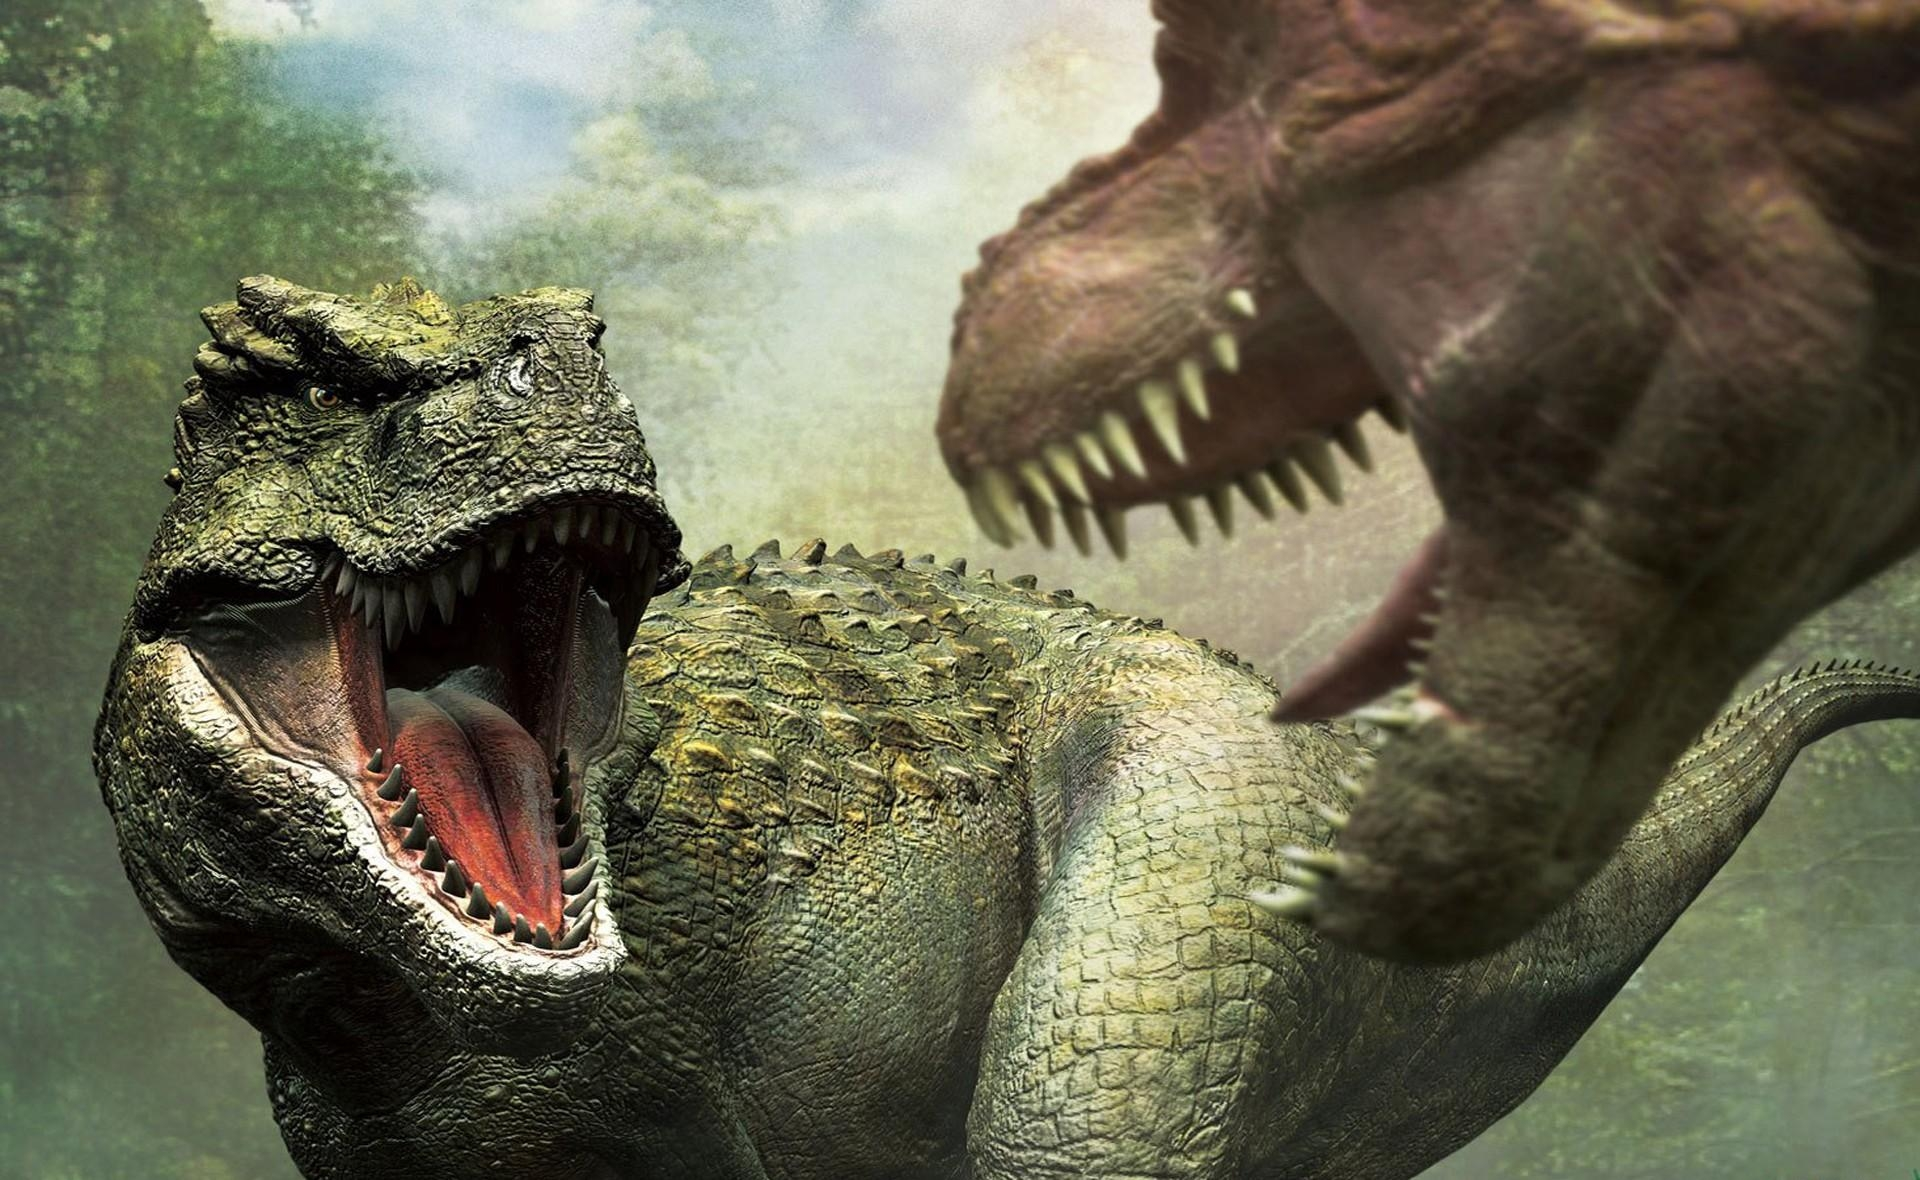 120619 download wallpaper Fantasy, Dinosaurs, Aggression, Fangs, To Fall, Mouth screensavers and pictures for free